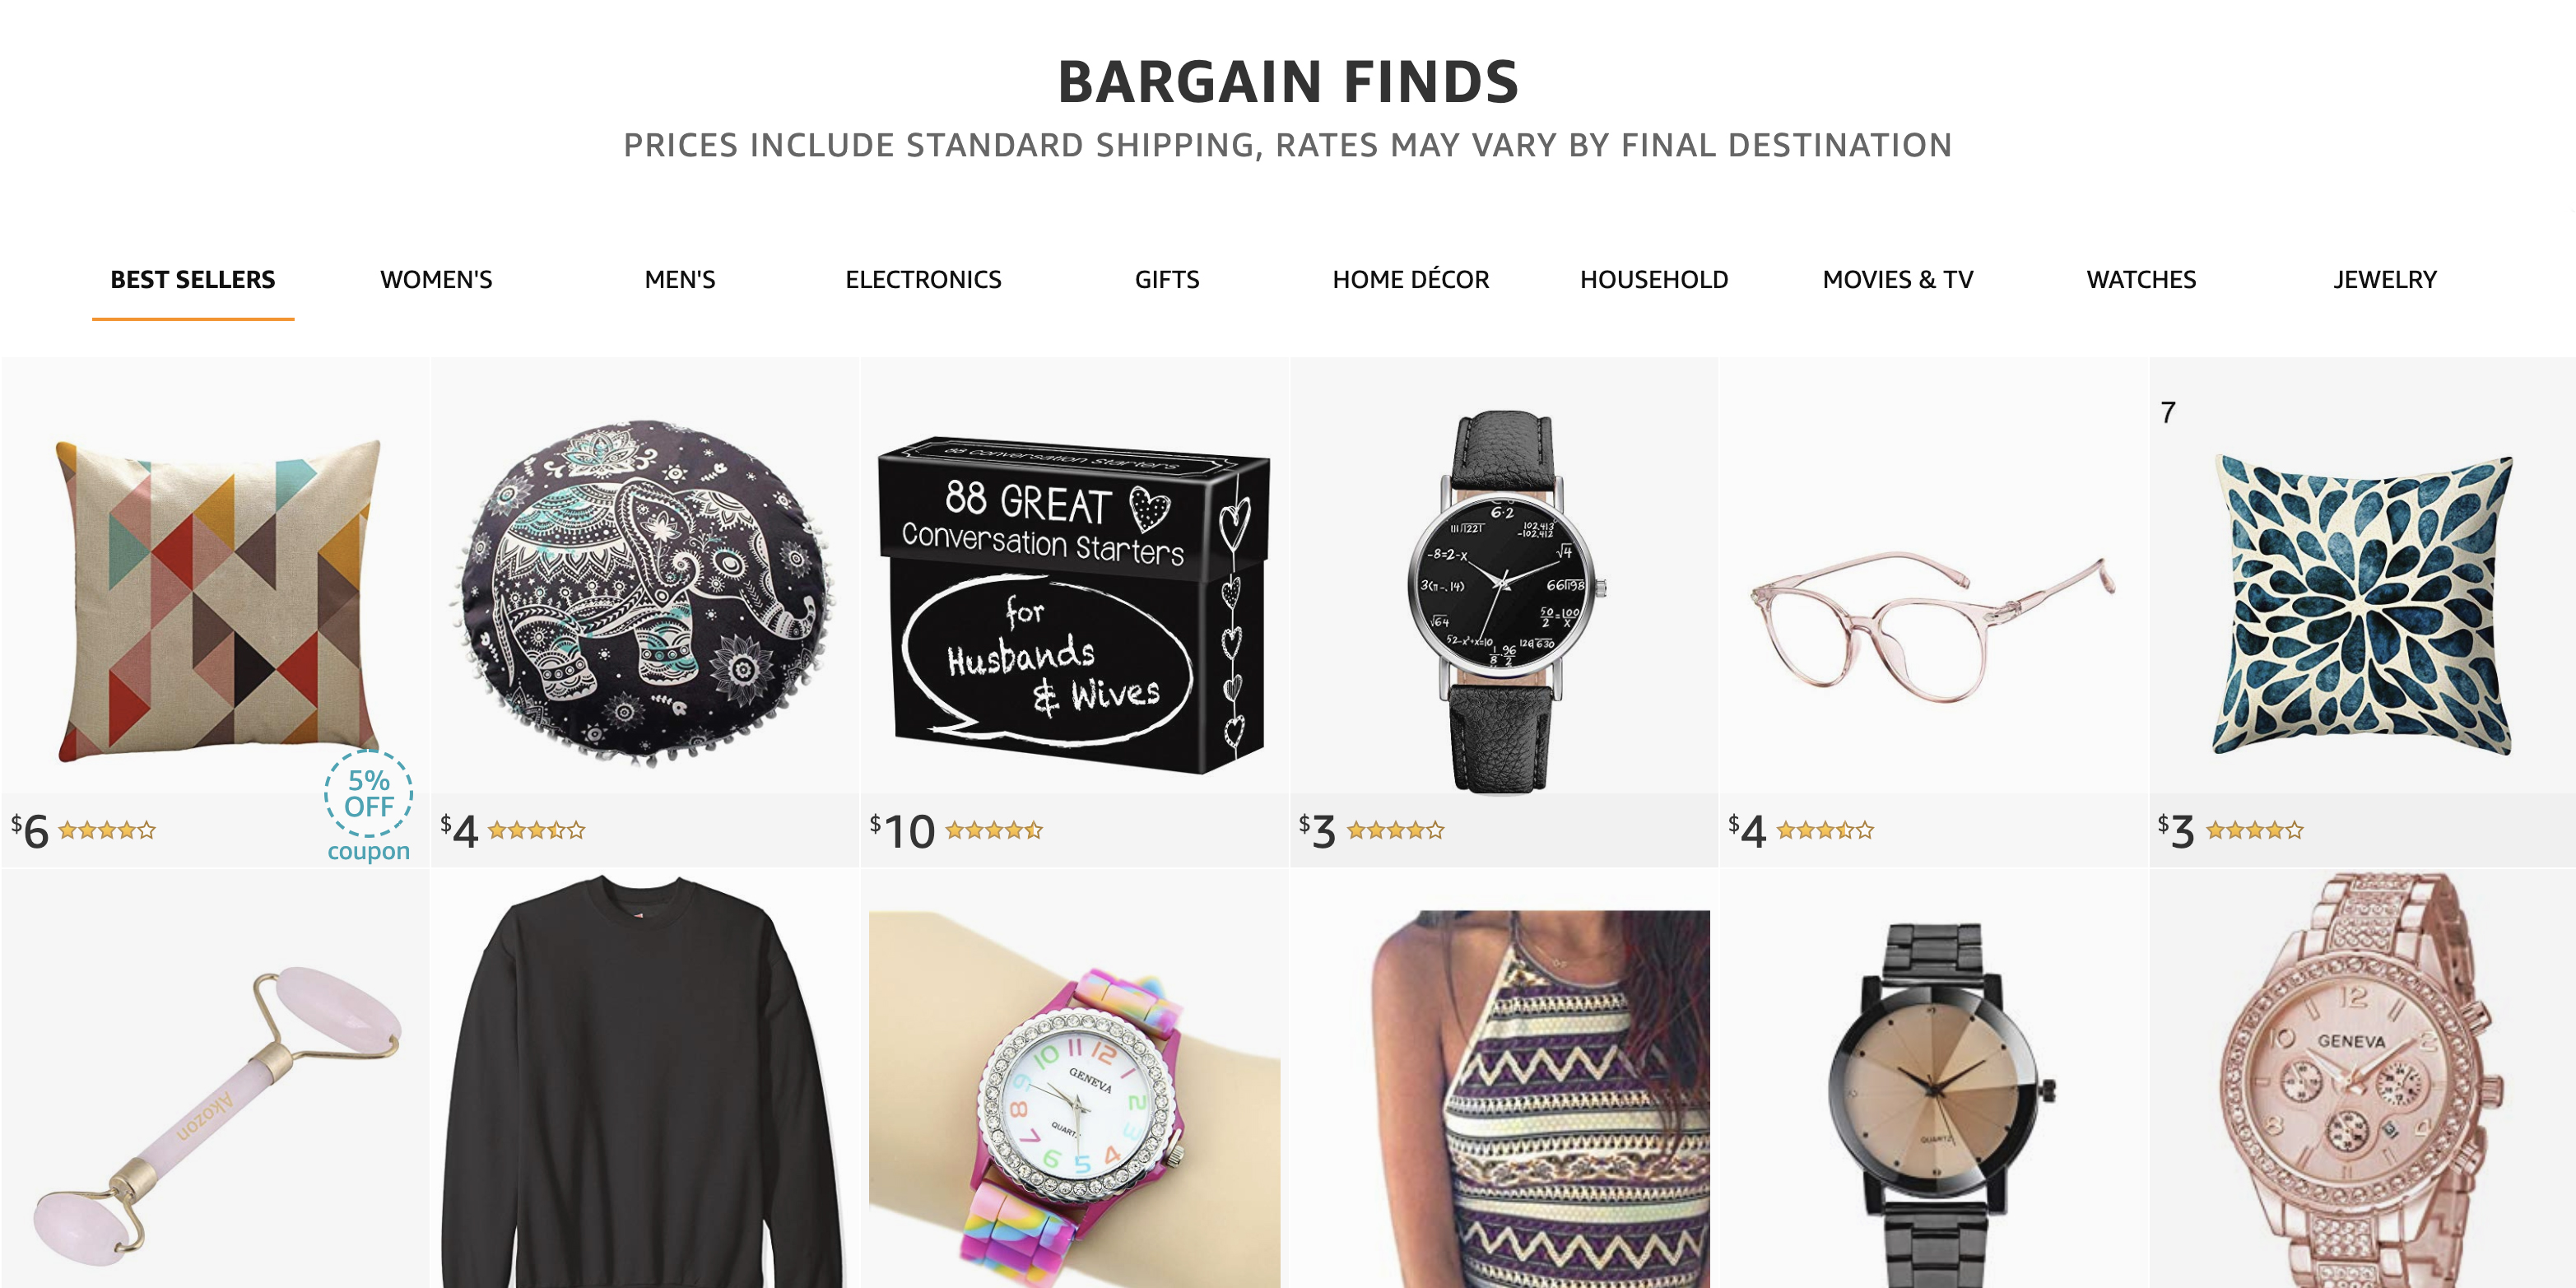 The Bargain Finds store at Amazon offers free shipping for